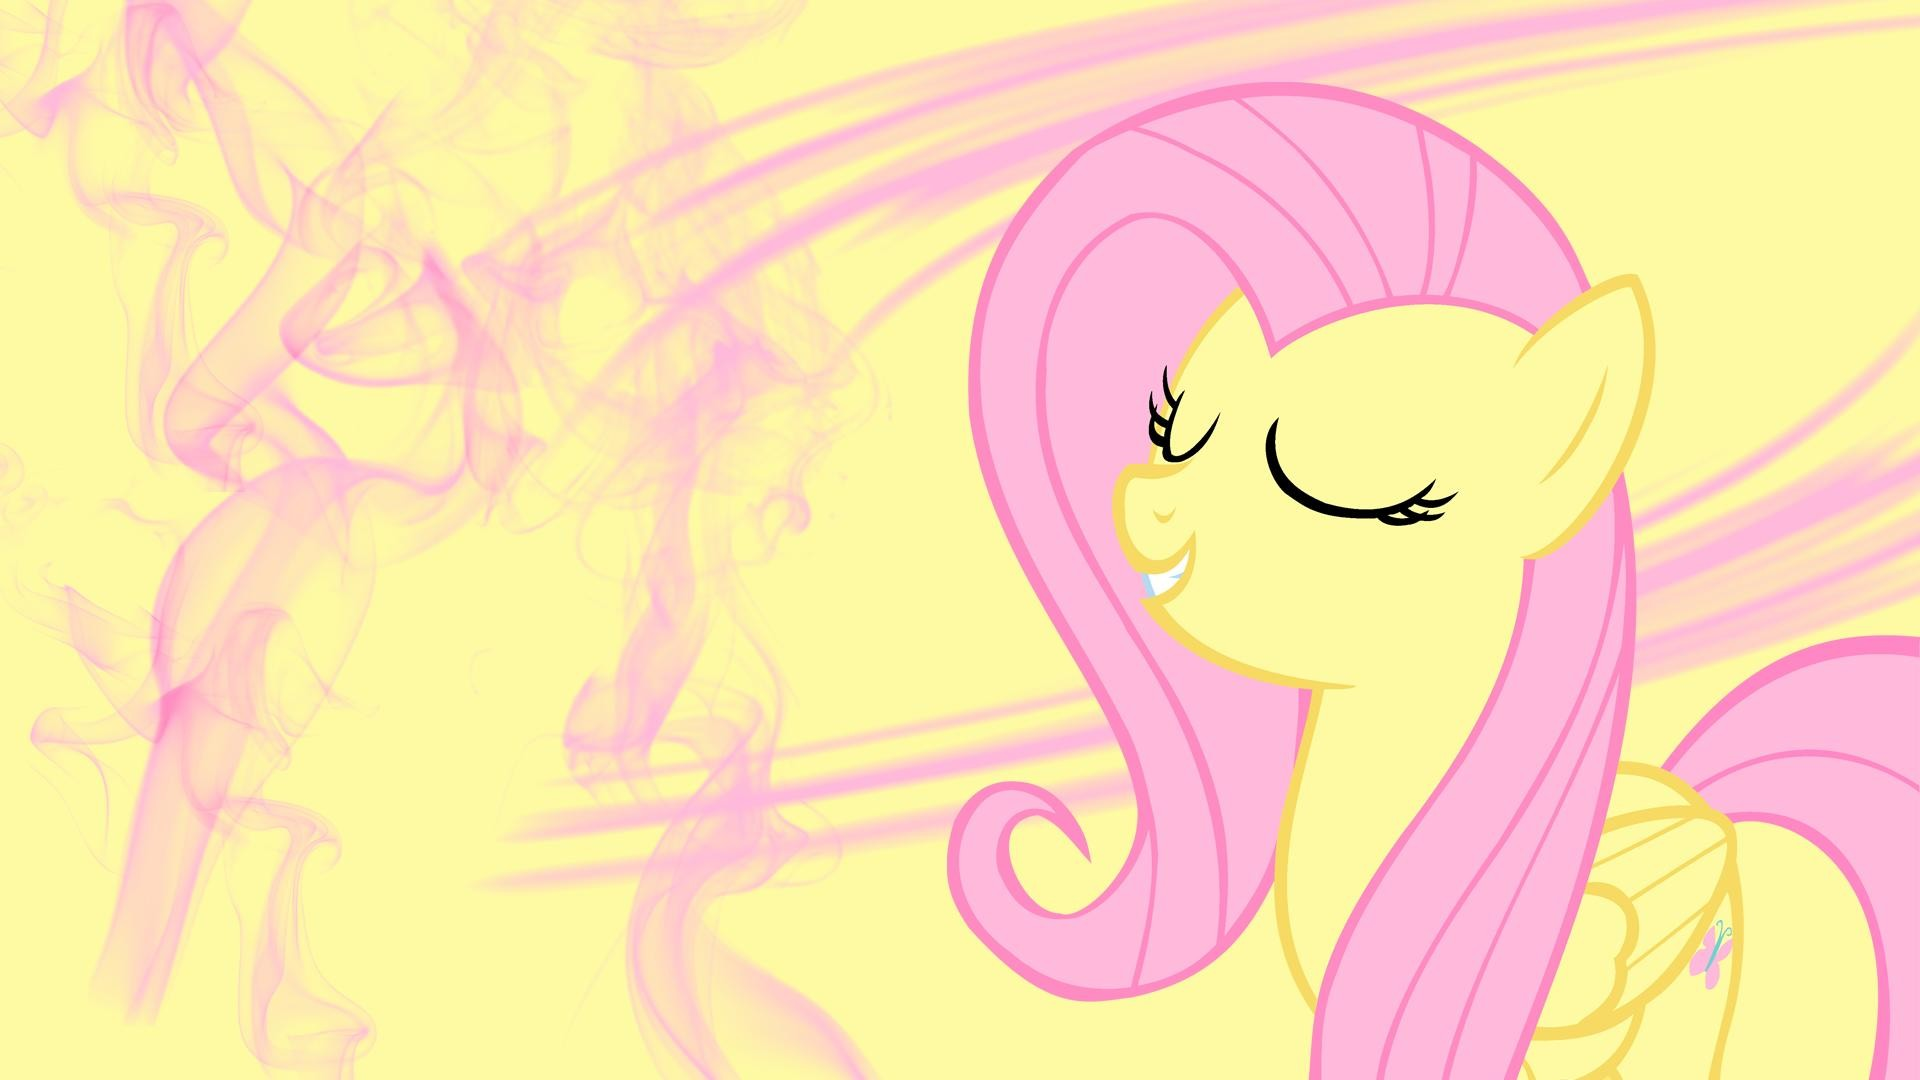 Smoke My Little Pony Fluttershy wallpaper | 1920x1080 ...